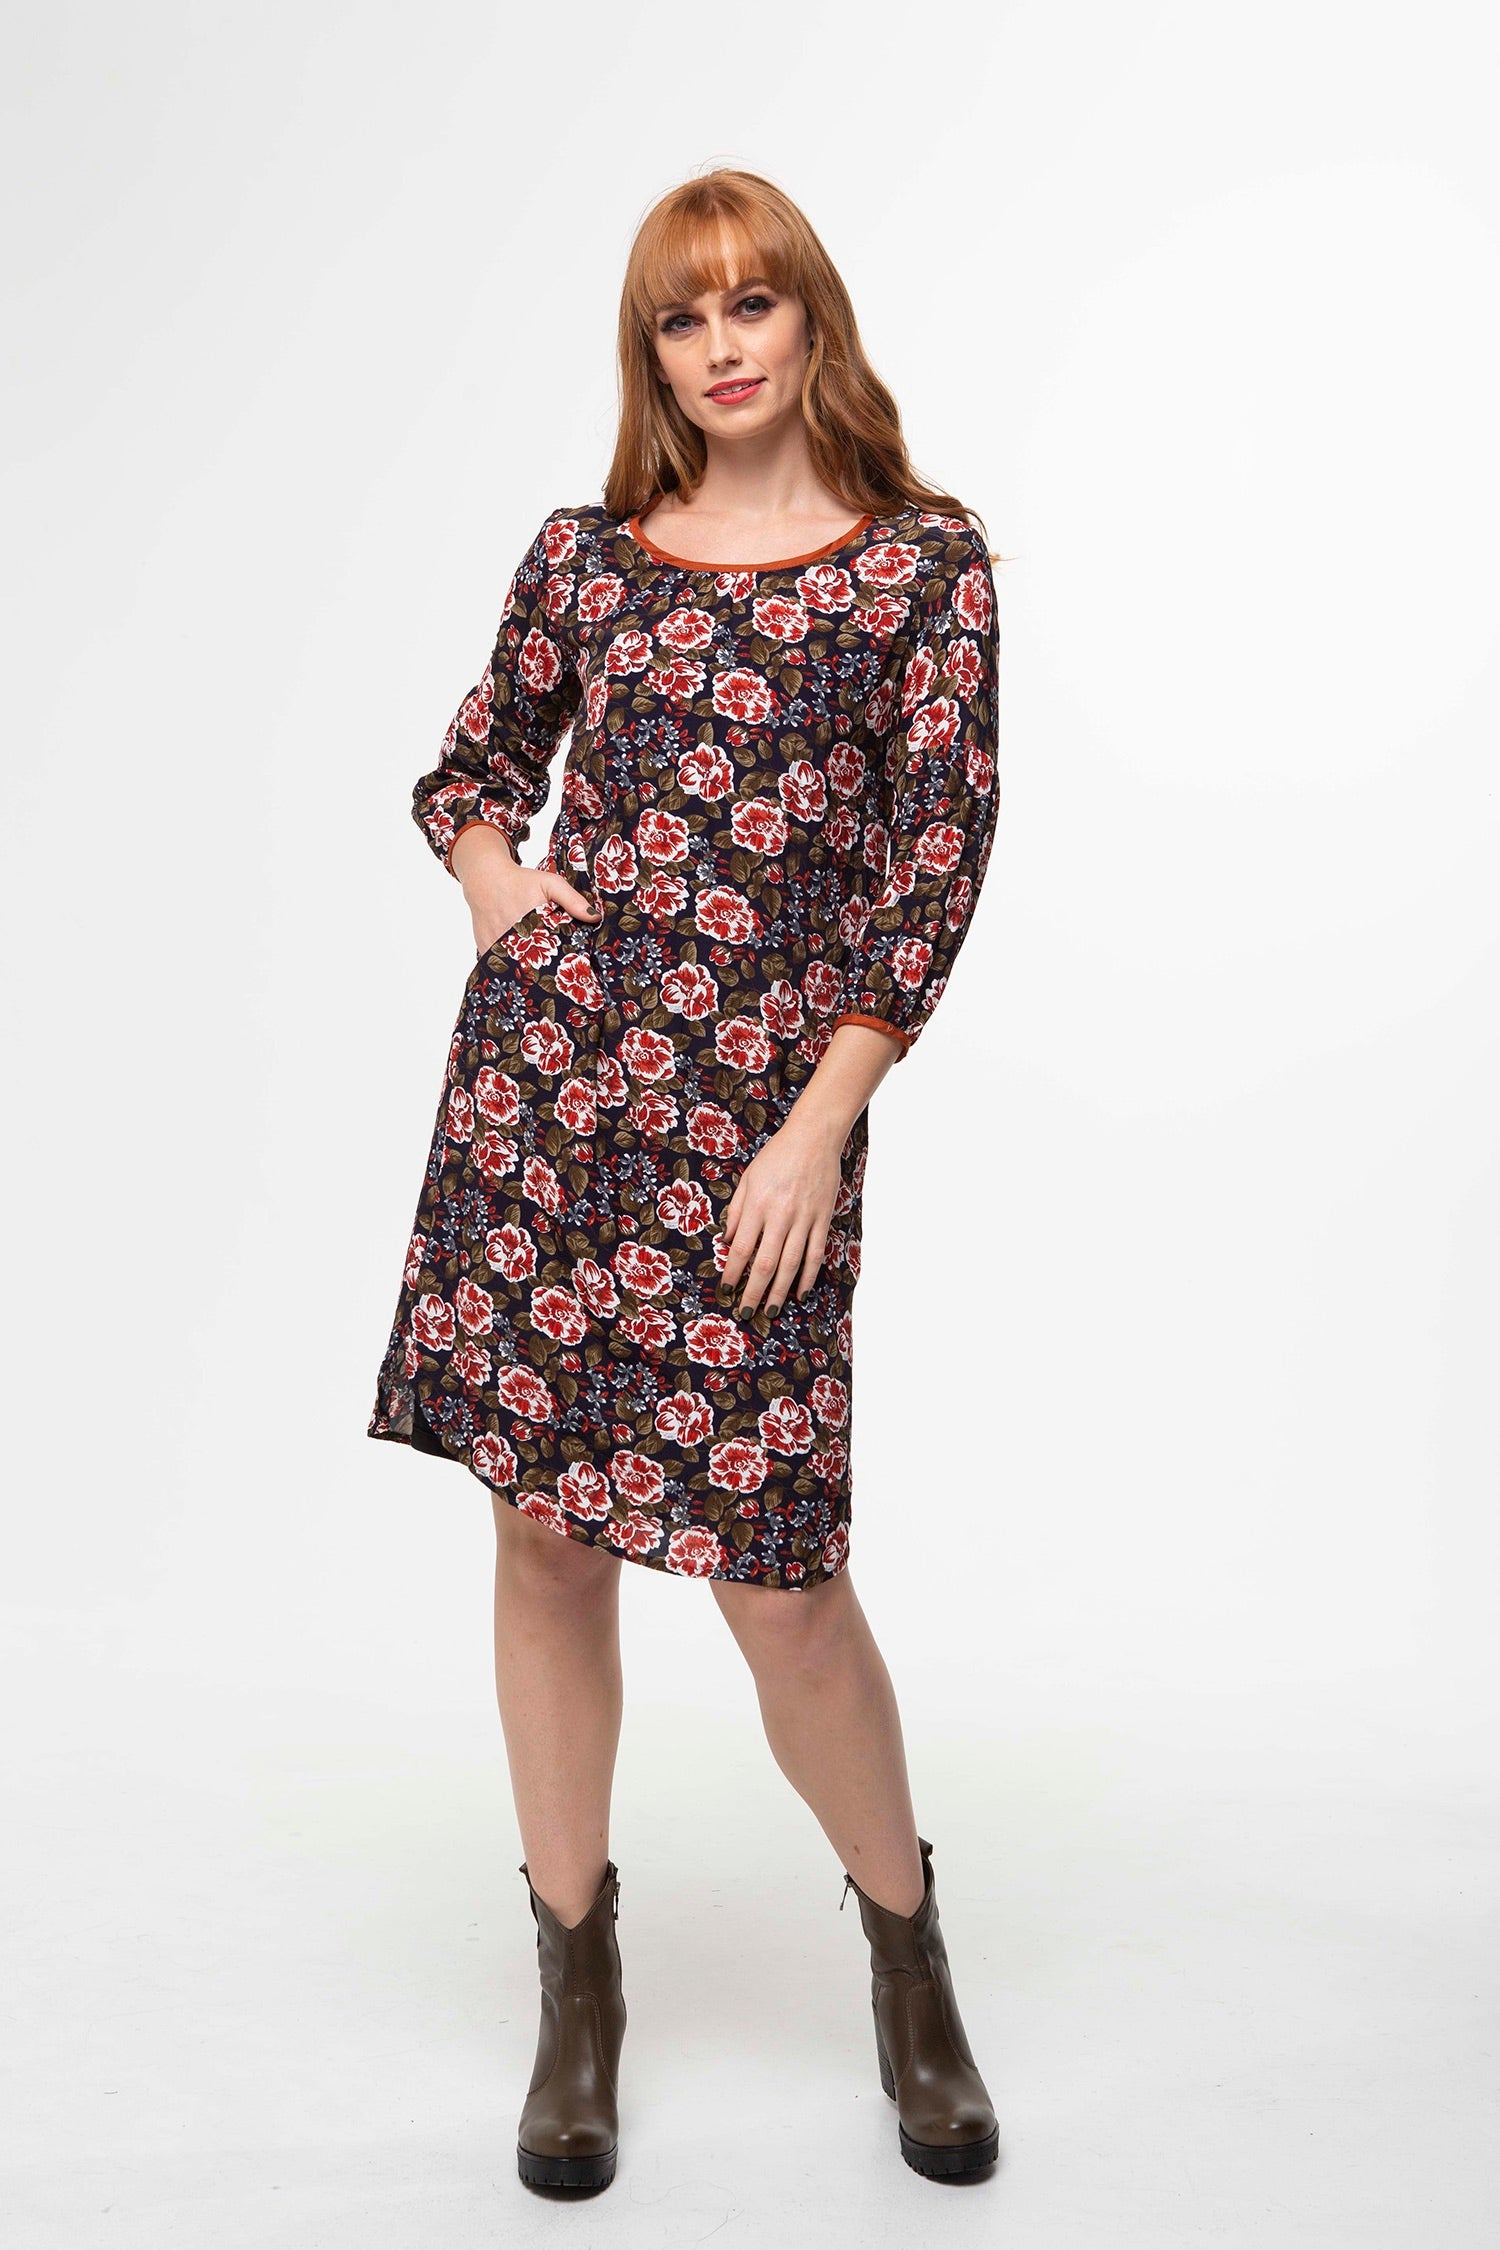 Juna Bounce Dress - Brick Rose